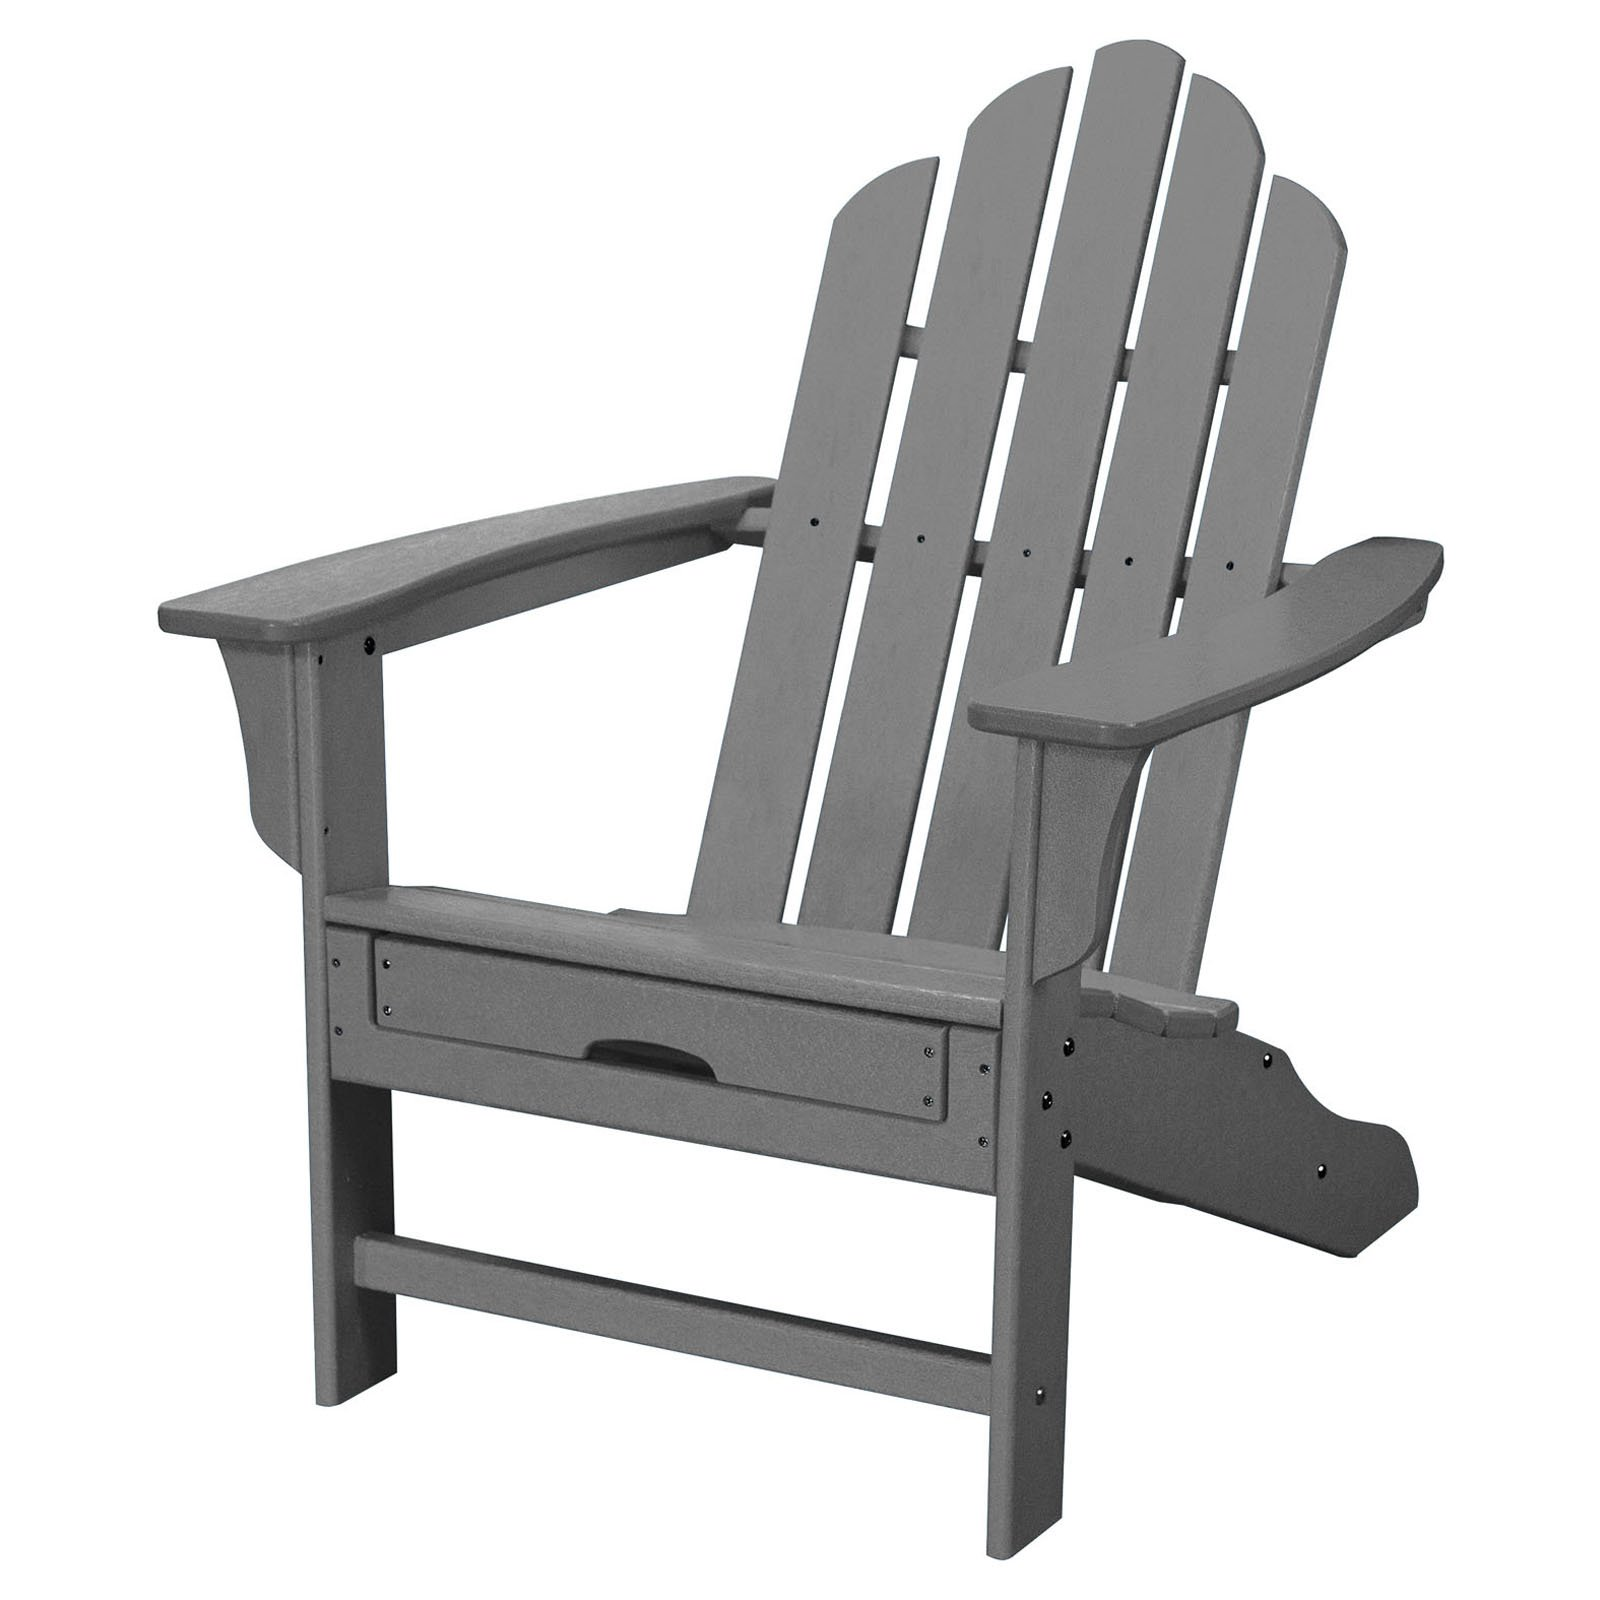 Hanover Outdoor All Weather Contoured Adirondack Chair With Hideaway Ottoman